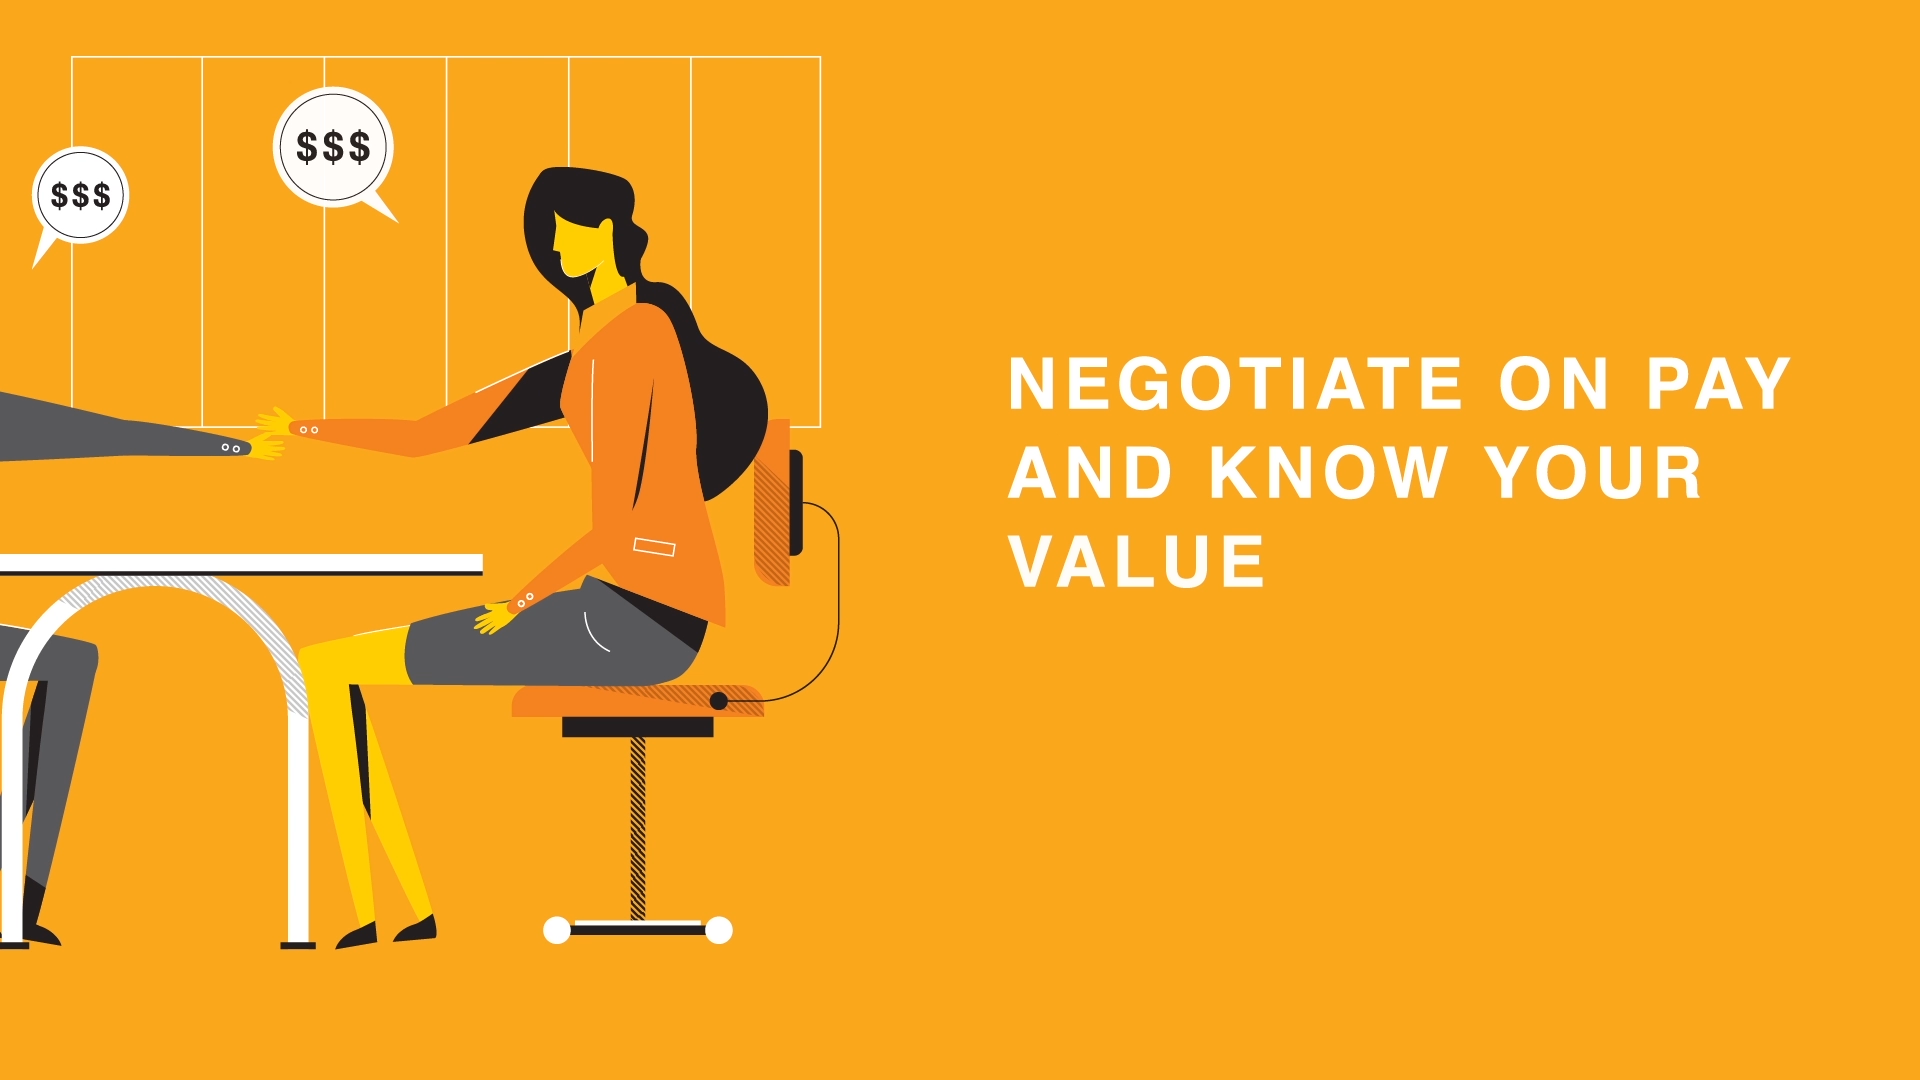 Negotiate on pay and know your value